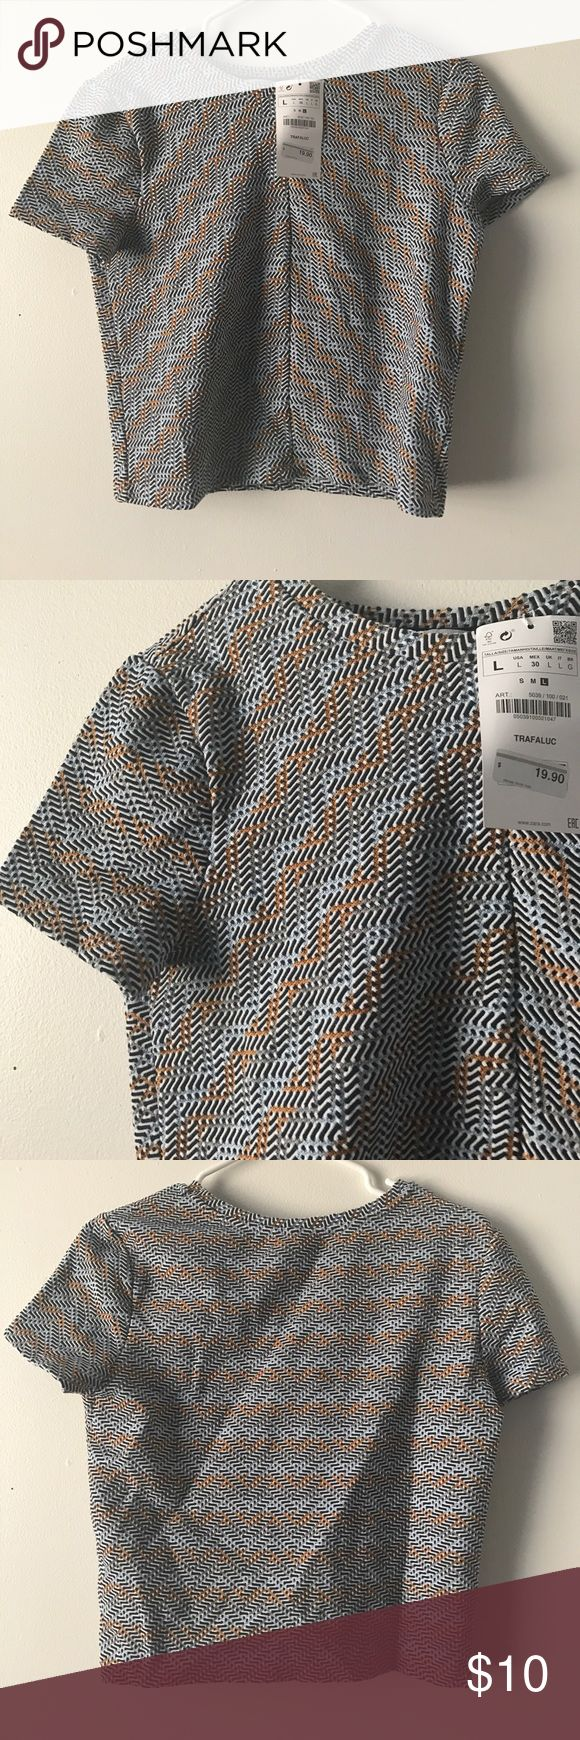 Multi color crop top from Zara Great spring or summer print. Crop top. Tags attached. Zara Tops Crop Tops